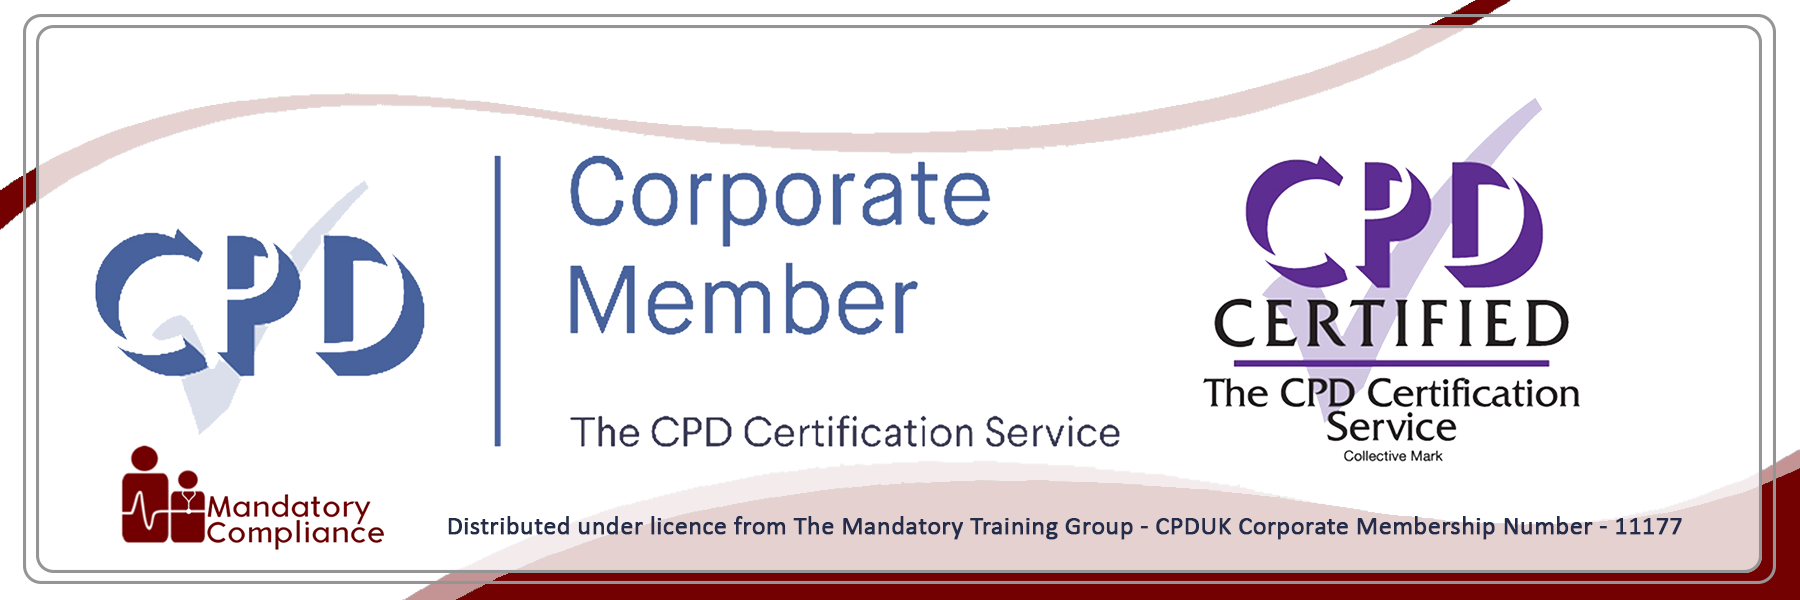 All In One Mandatory Training – 24 CPD Courses - Online Training Courses - CPDUK Accredited